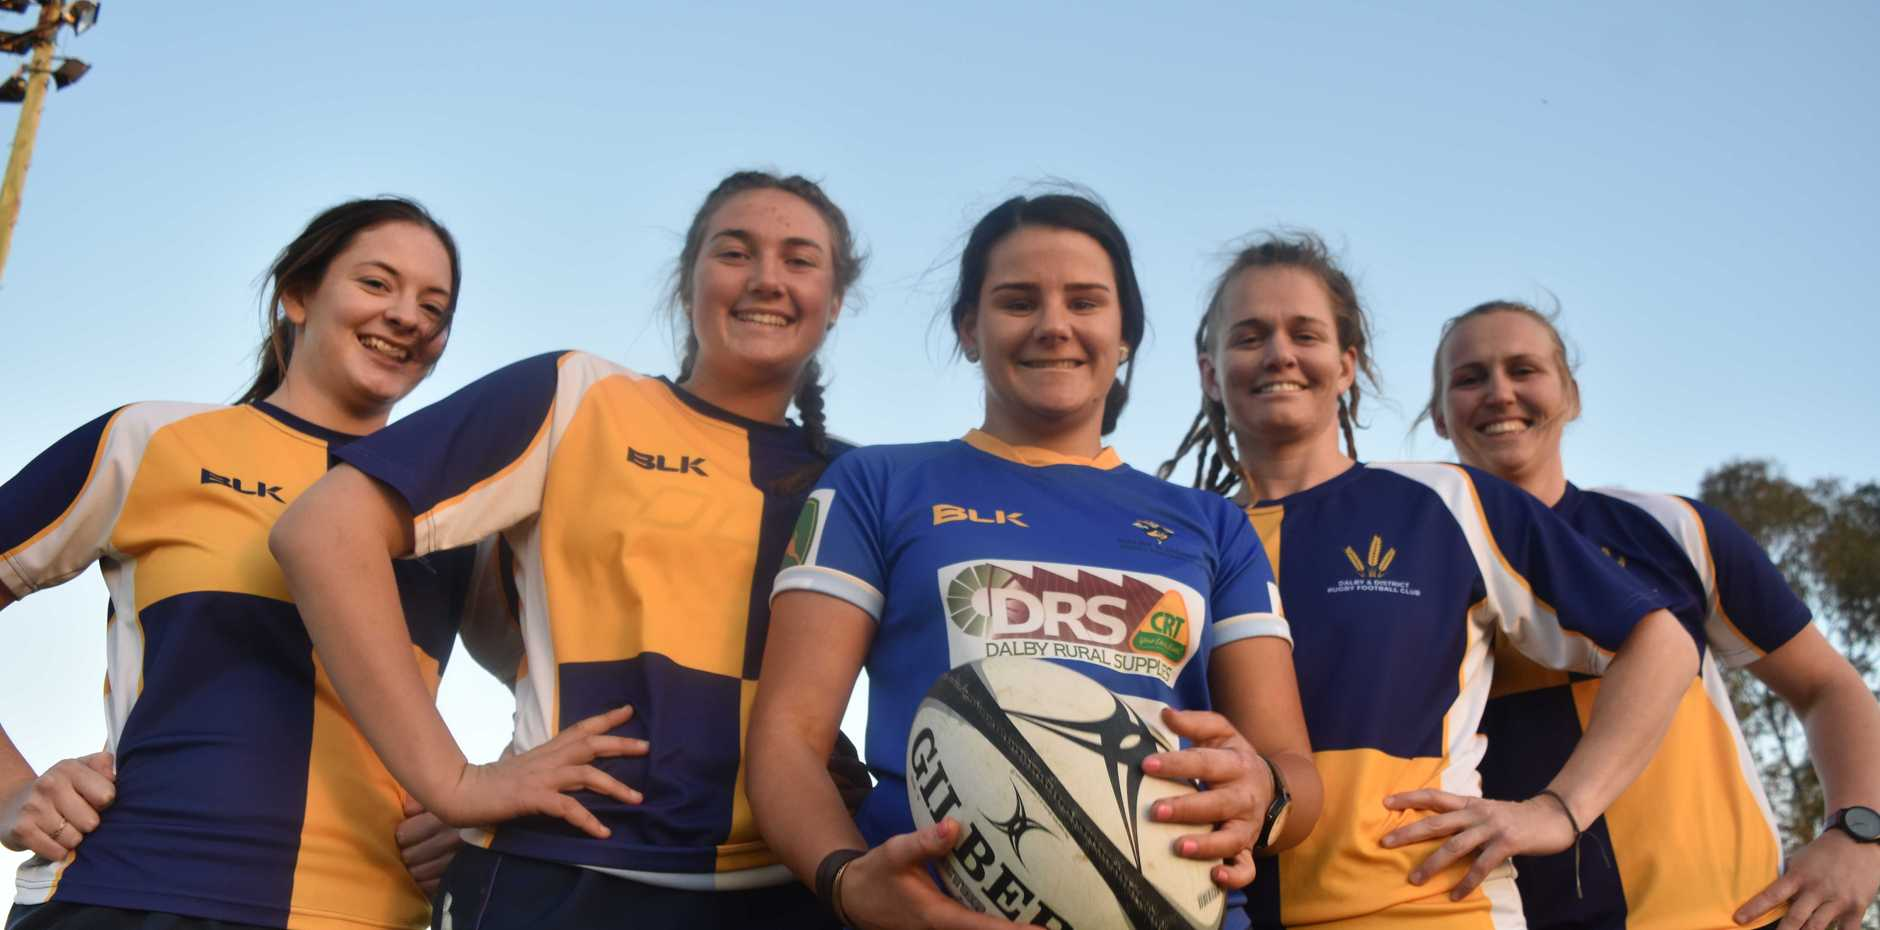 GO GIRLS: Karlee Peltz, Maddy Thompson, Talhia Hornick, Sarah Pearce, and Danielle Plummer are ready to give it their all this week as they prepare for the finals of the Emilee Cherry Womens 7's Cup.